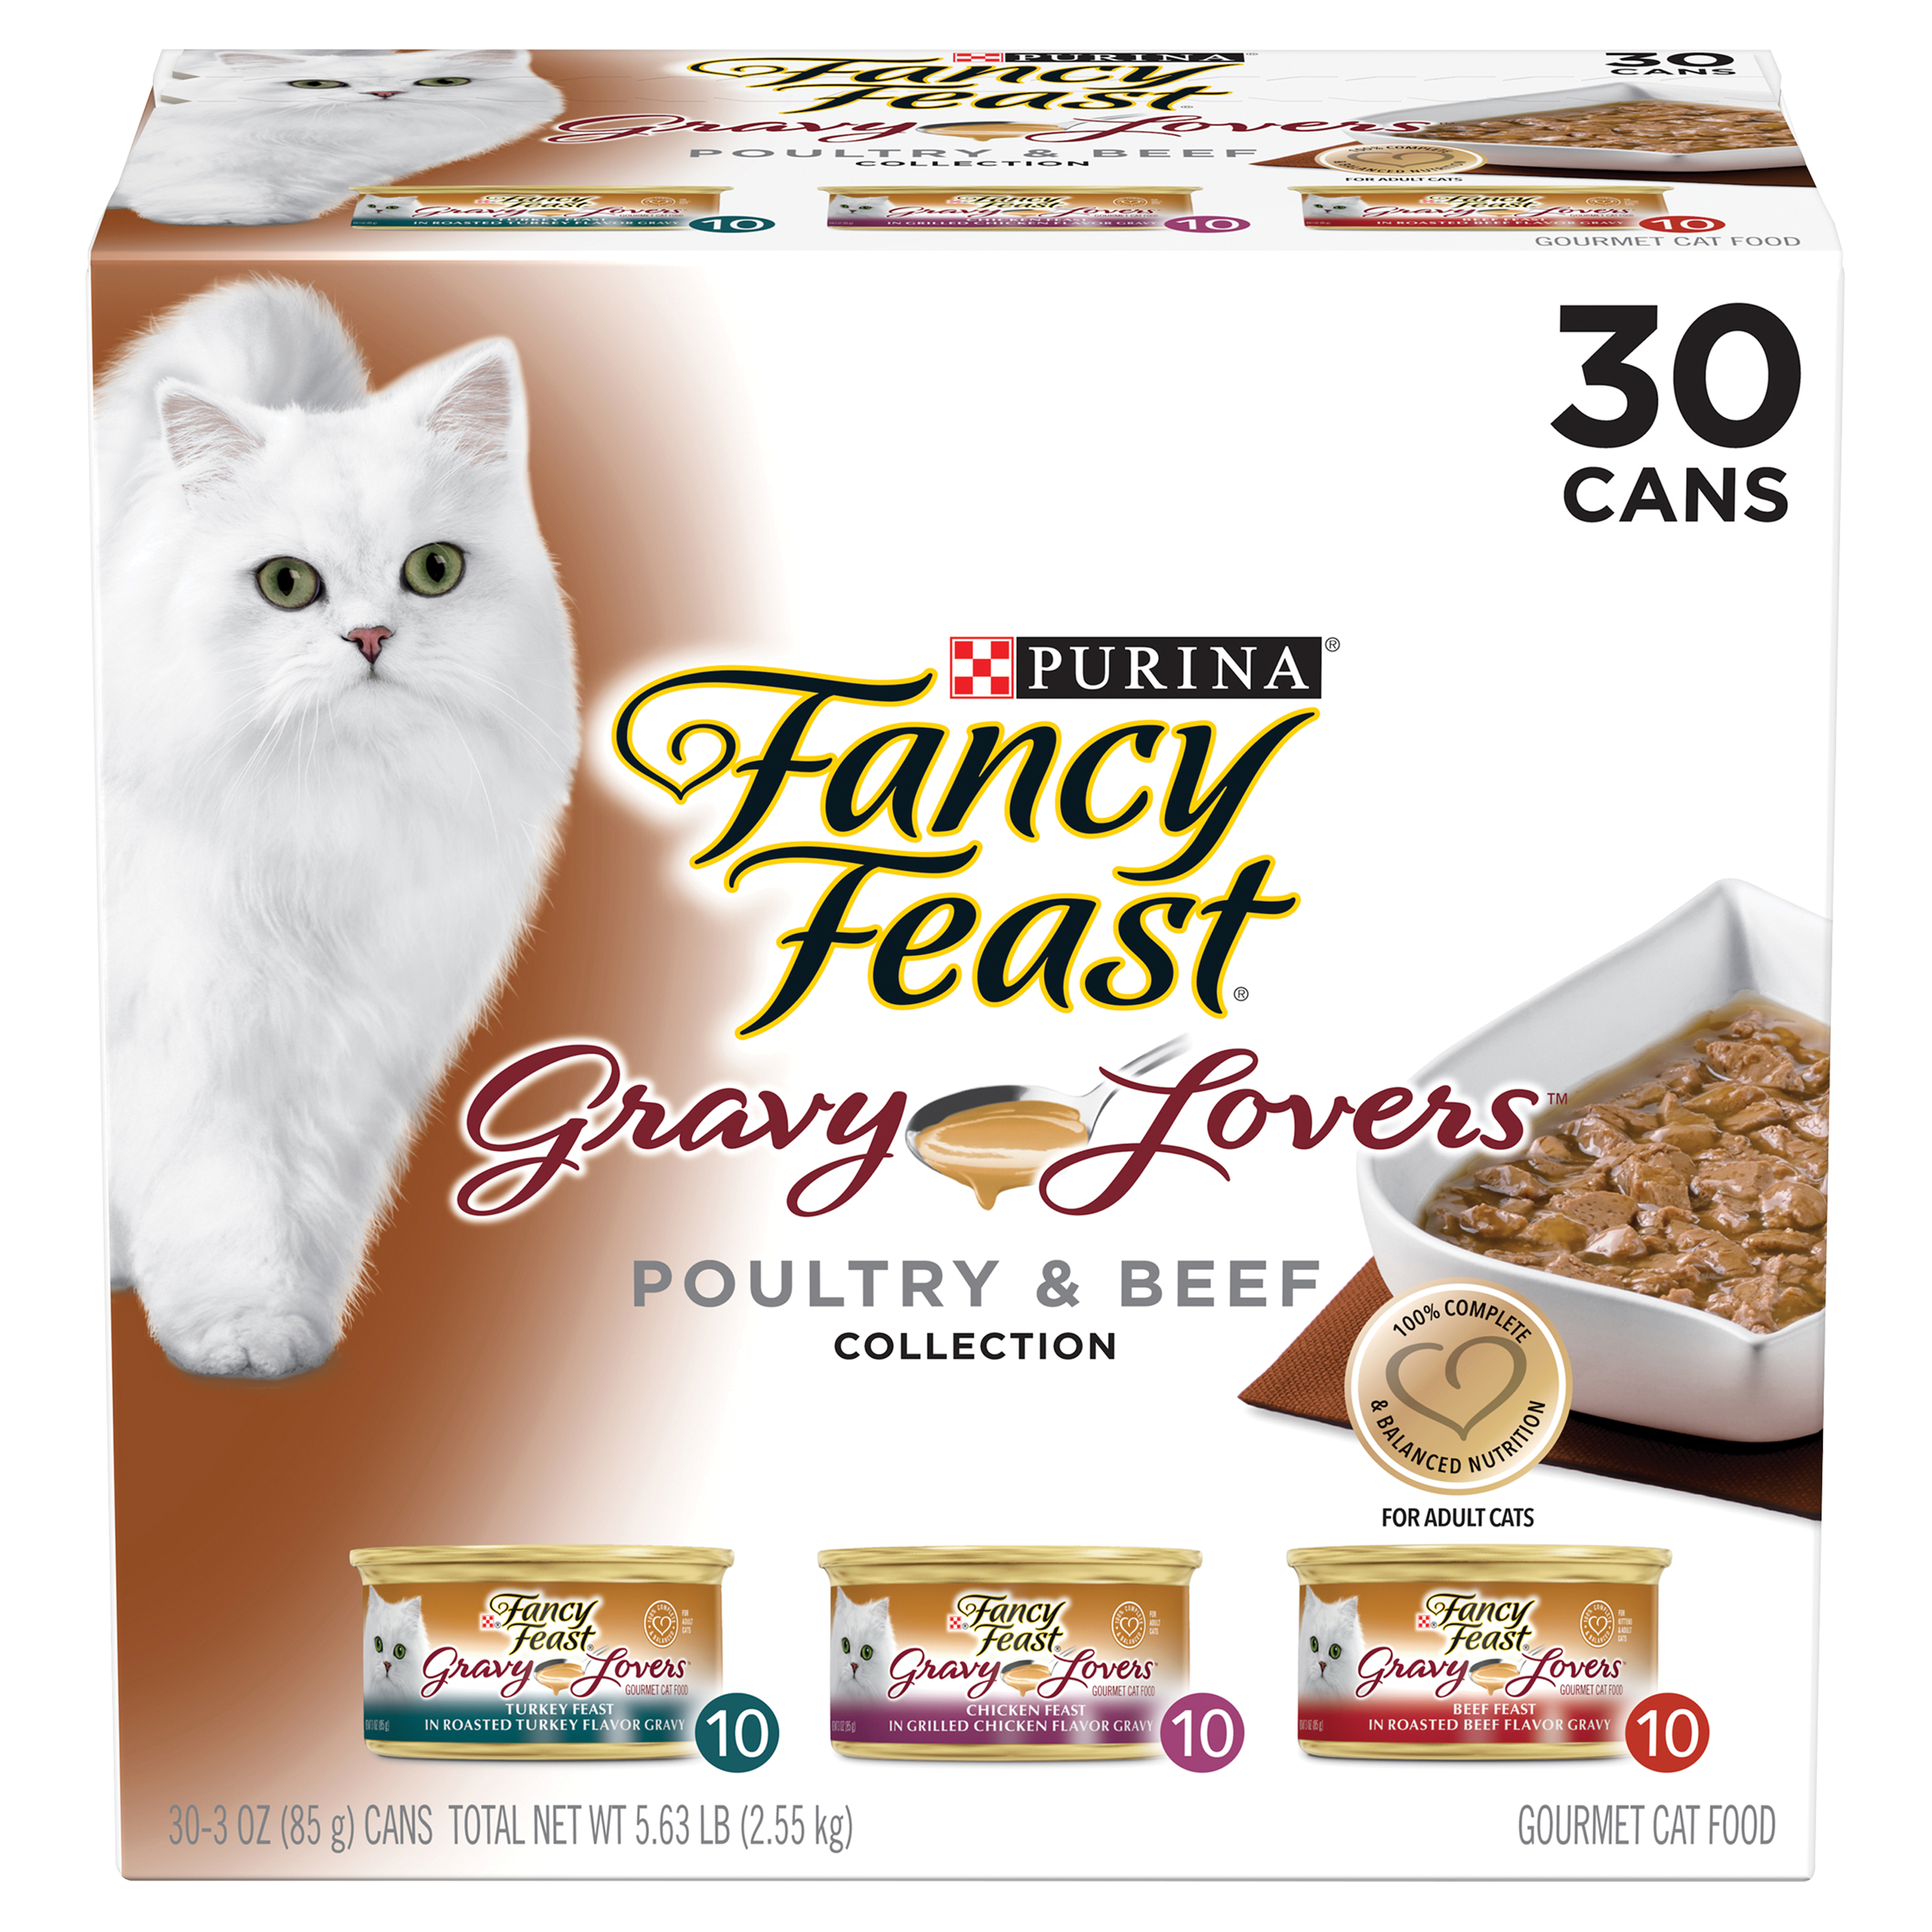 Purina Fancy Feast Gravy Lovers Poultry & Beef Feast Collection Wet Cat Food Variety Pack - (30) 3 oz. Cans